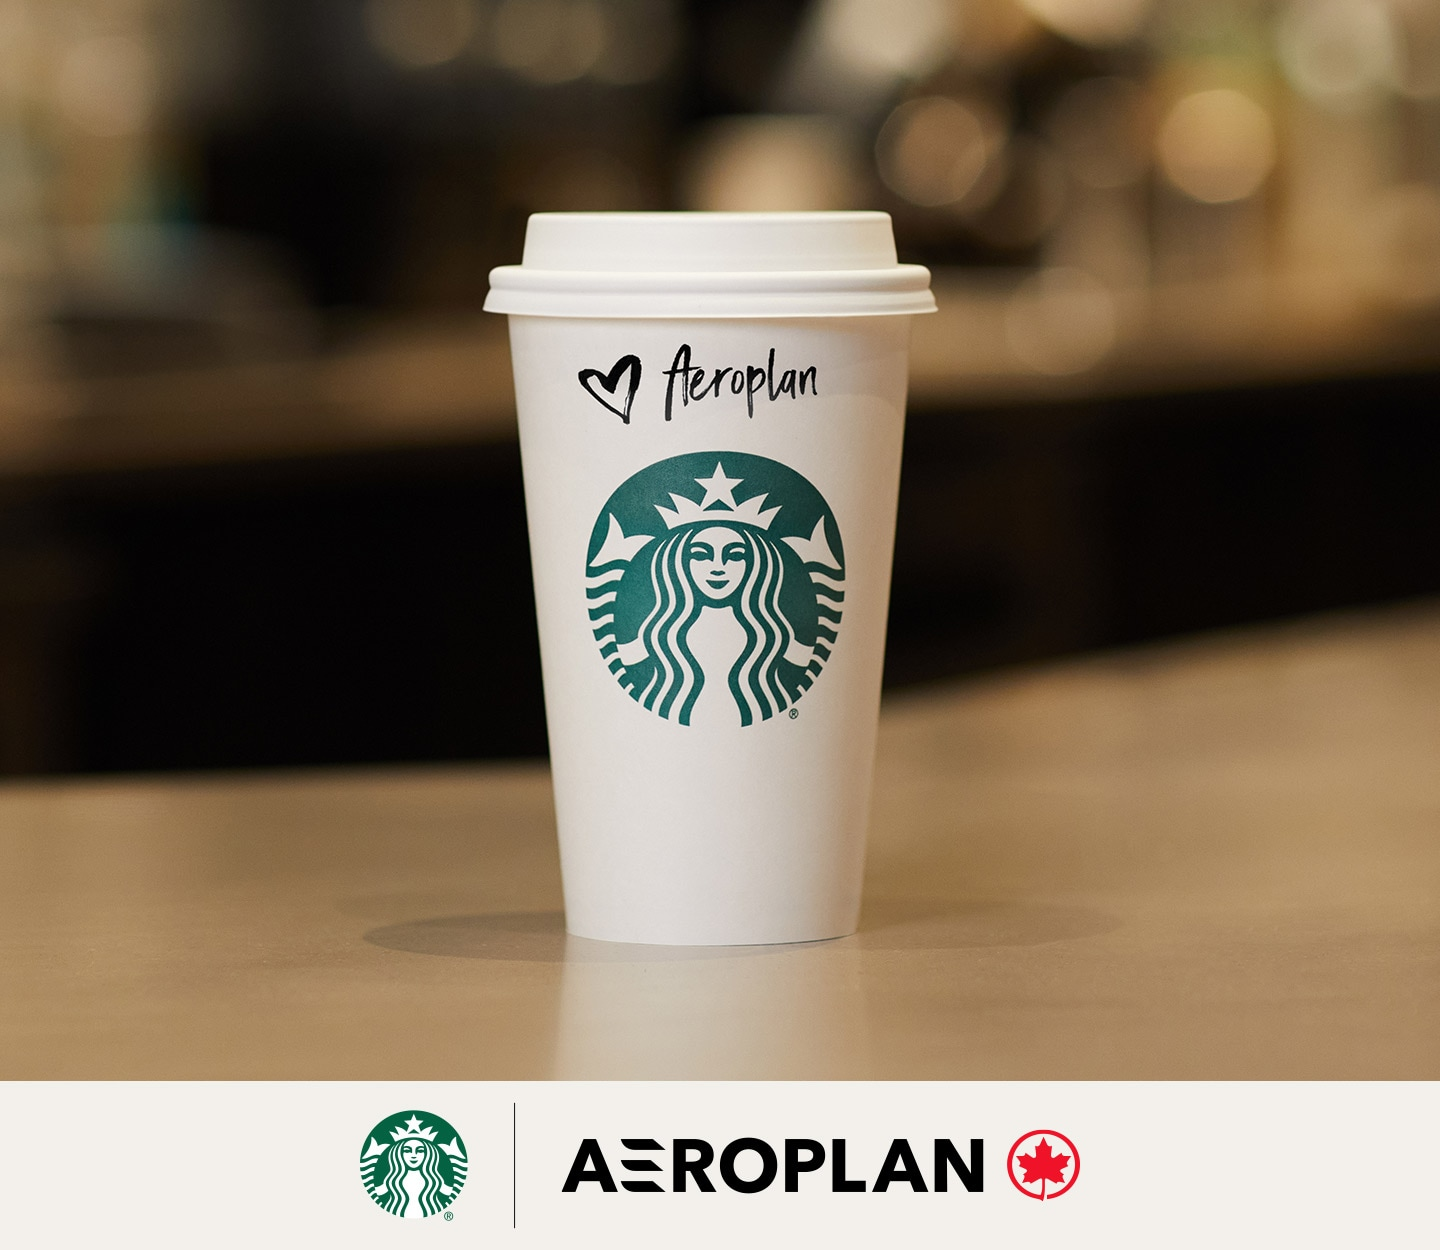 A tall Starbucks hot cup with lid sits on the bar of a café waiting to be picked up. The customer name on the cup is Aeroplan.